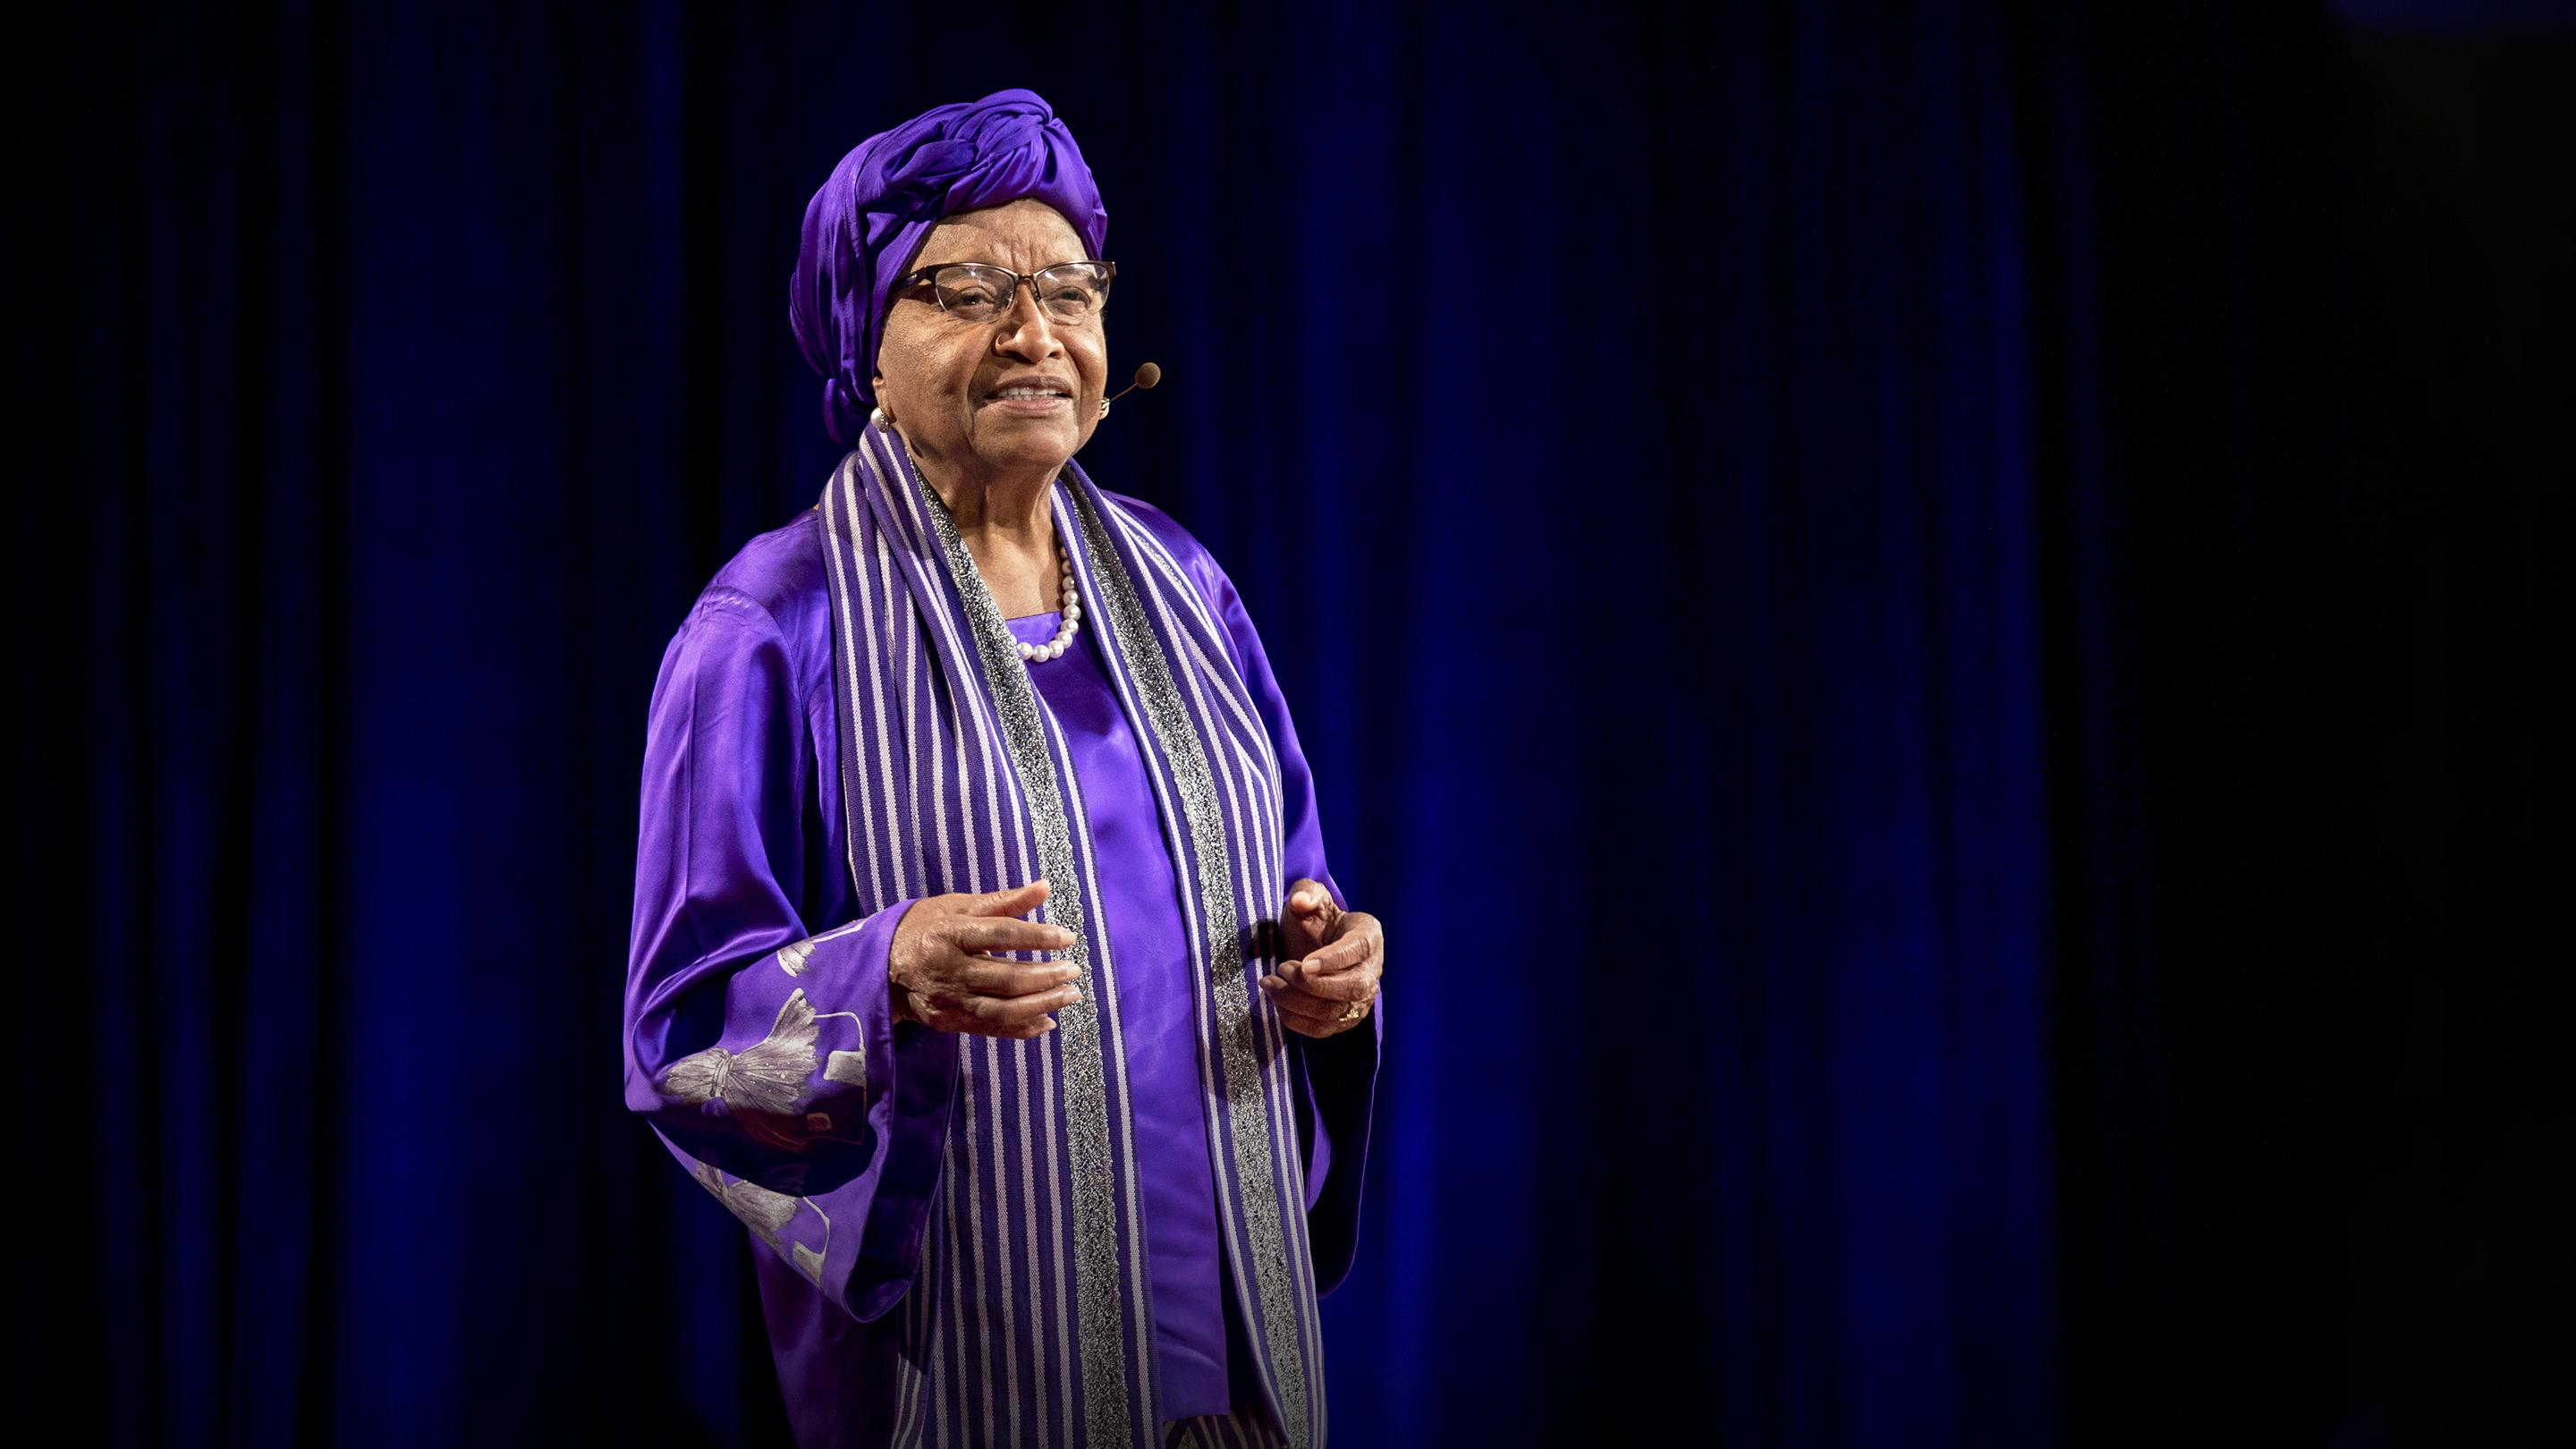 How women will lead us to freedom, justice and peace | H.E. Ellen Johnson Sirleaf